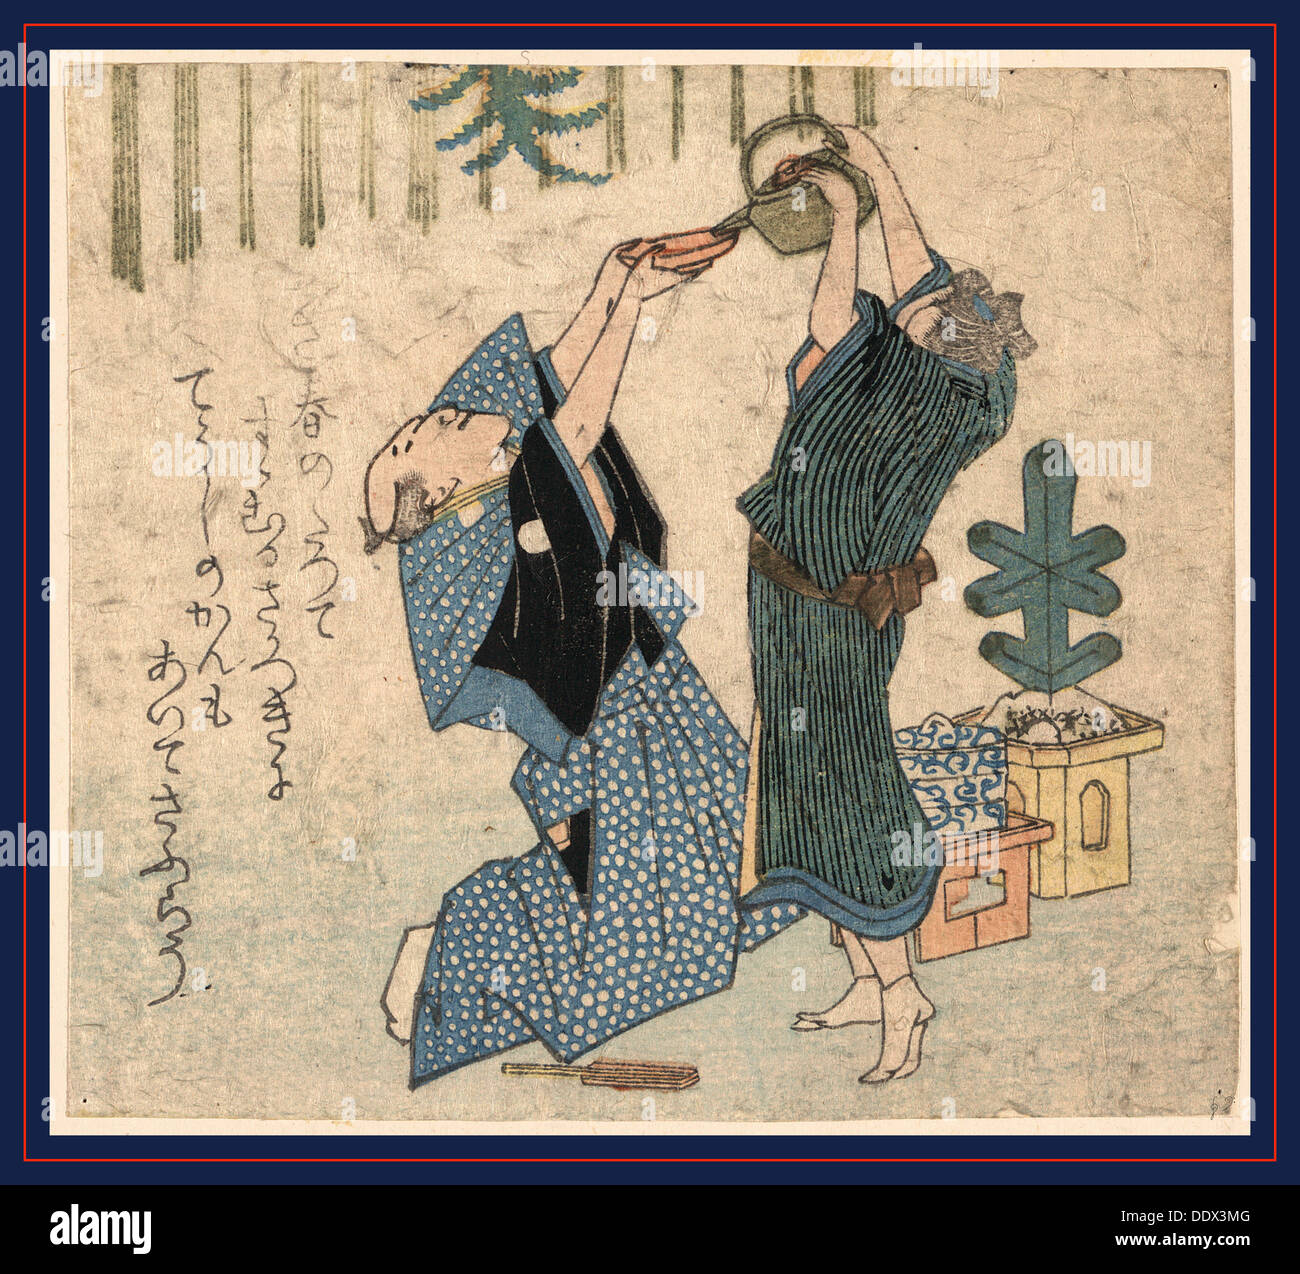 Giga shinnen no iwai, Comic celebration of the New Year. Print shows a man kneeling, holding a saucer overhead with - Stock Image